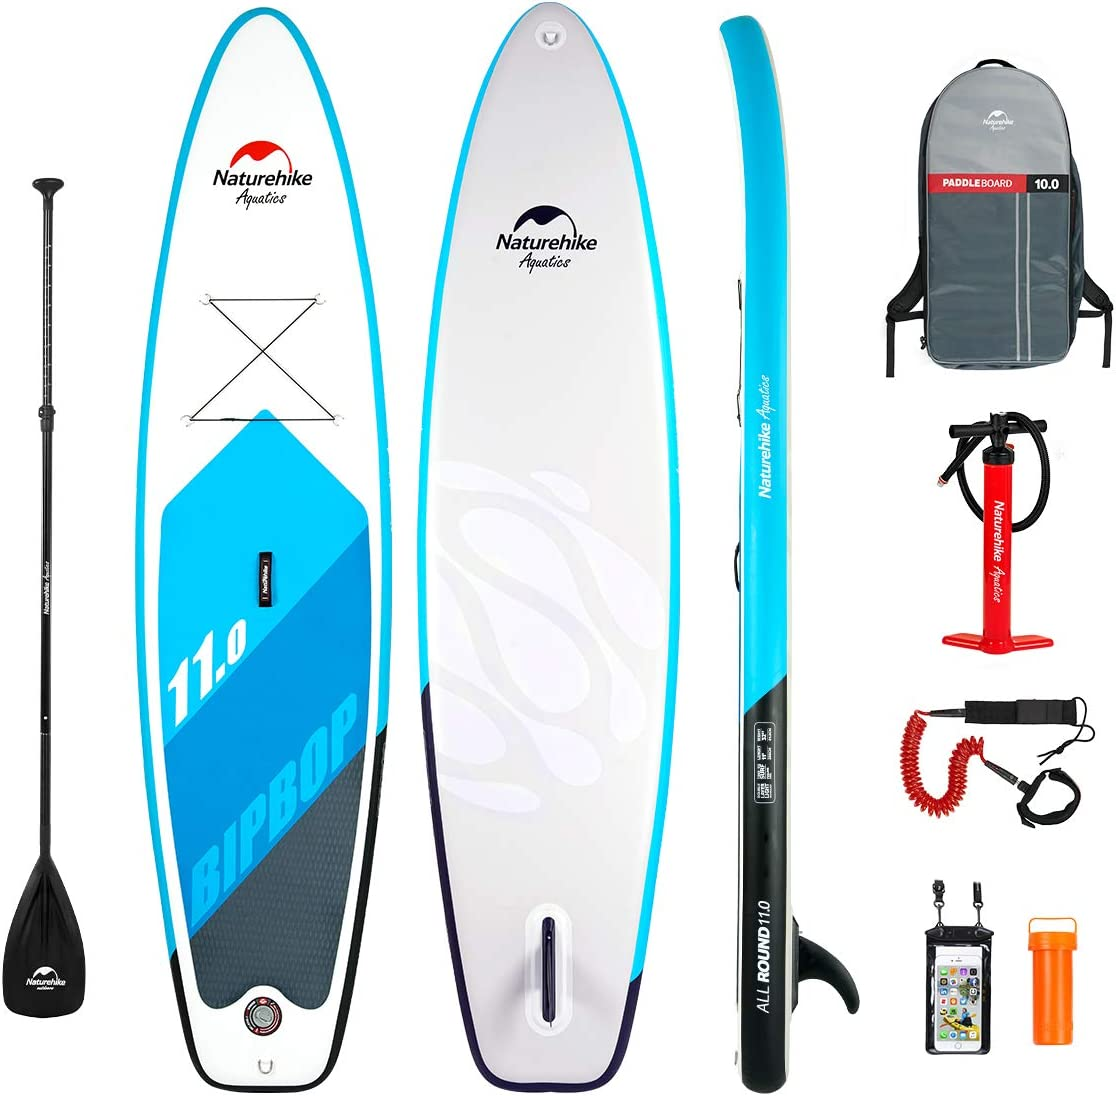 Naturehike Inflatable Stand Up Paddle Board (5/6 Inches Thick) with Premium SUP Accessories & Carry Bag | Wide Stance, Bottom Fin for Paddling, Surf ...